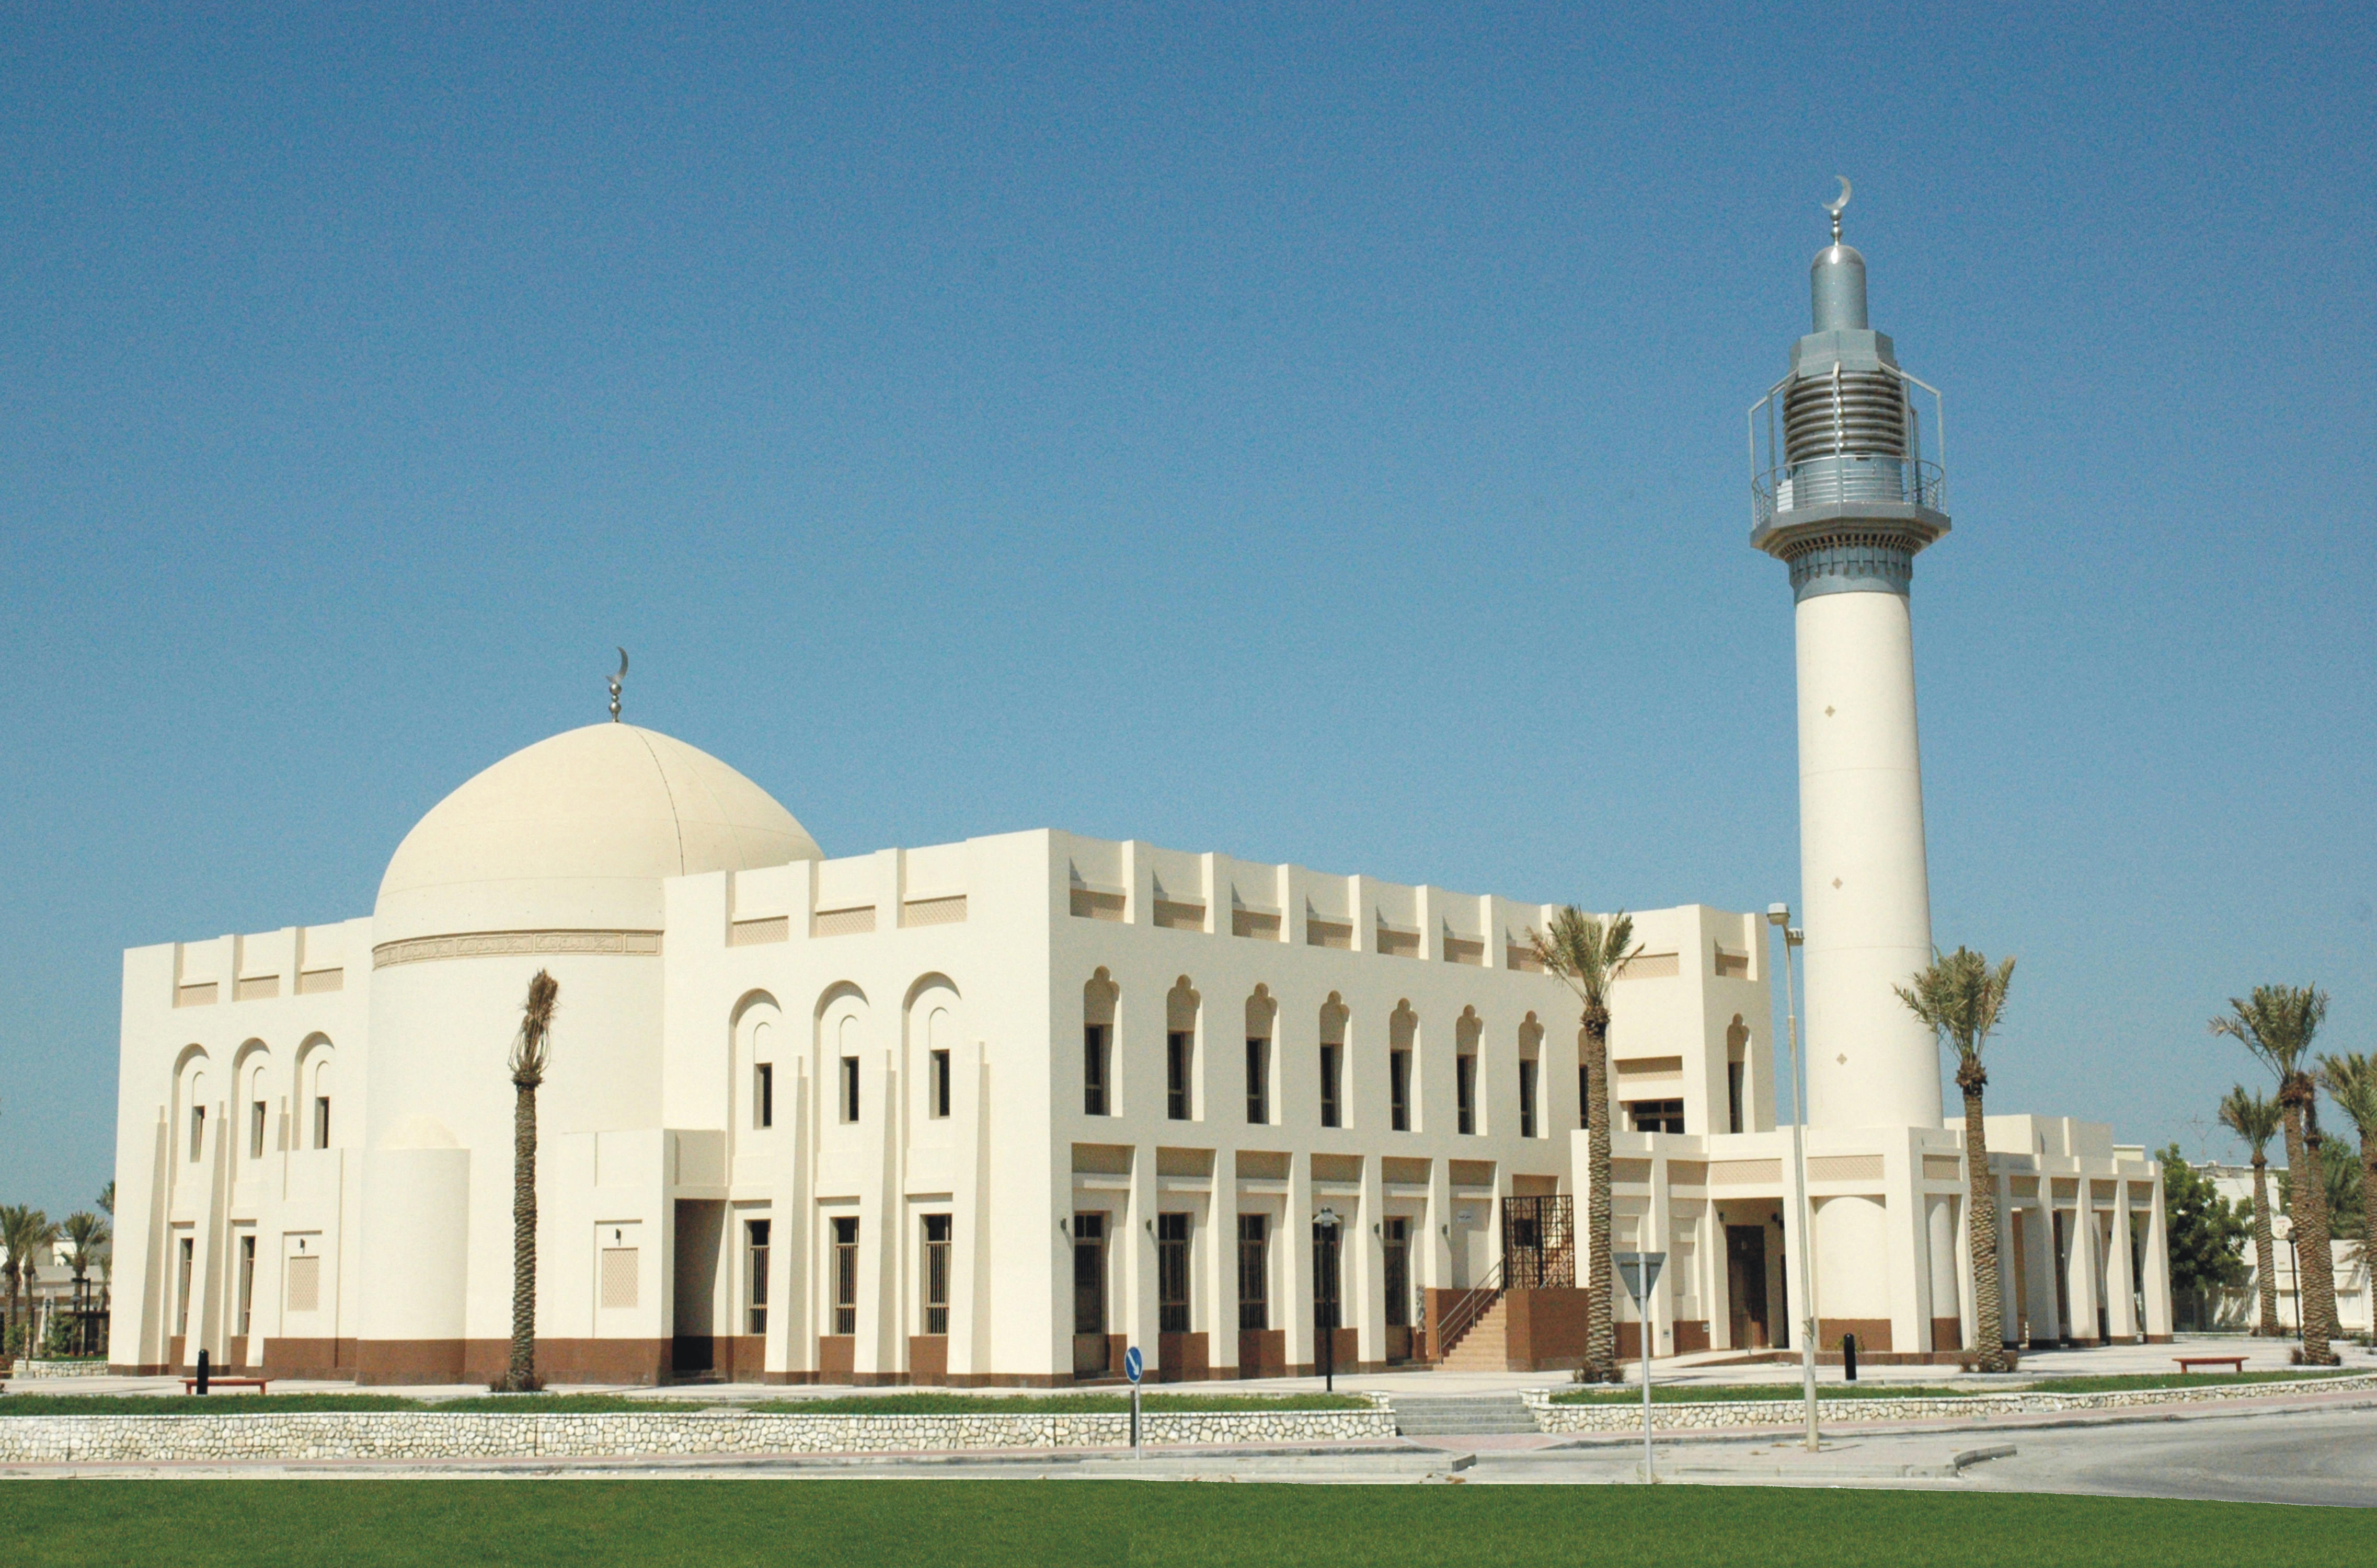 Shaikha Hessa Mosque Building Design And Supervision Services by MSCEB